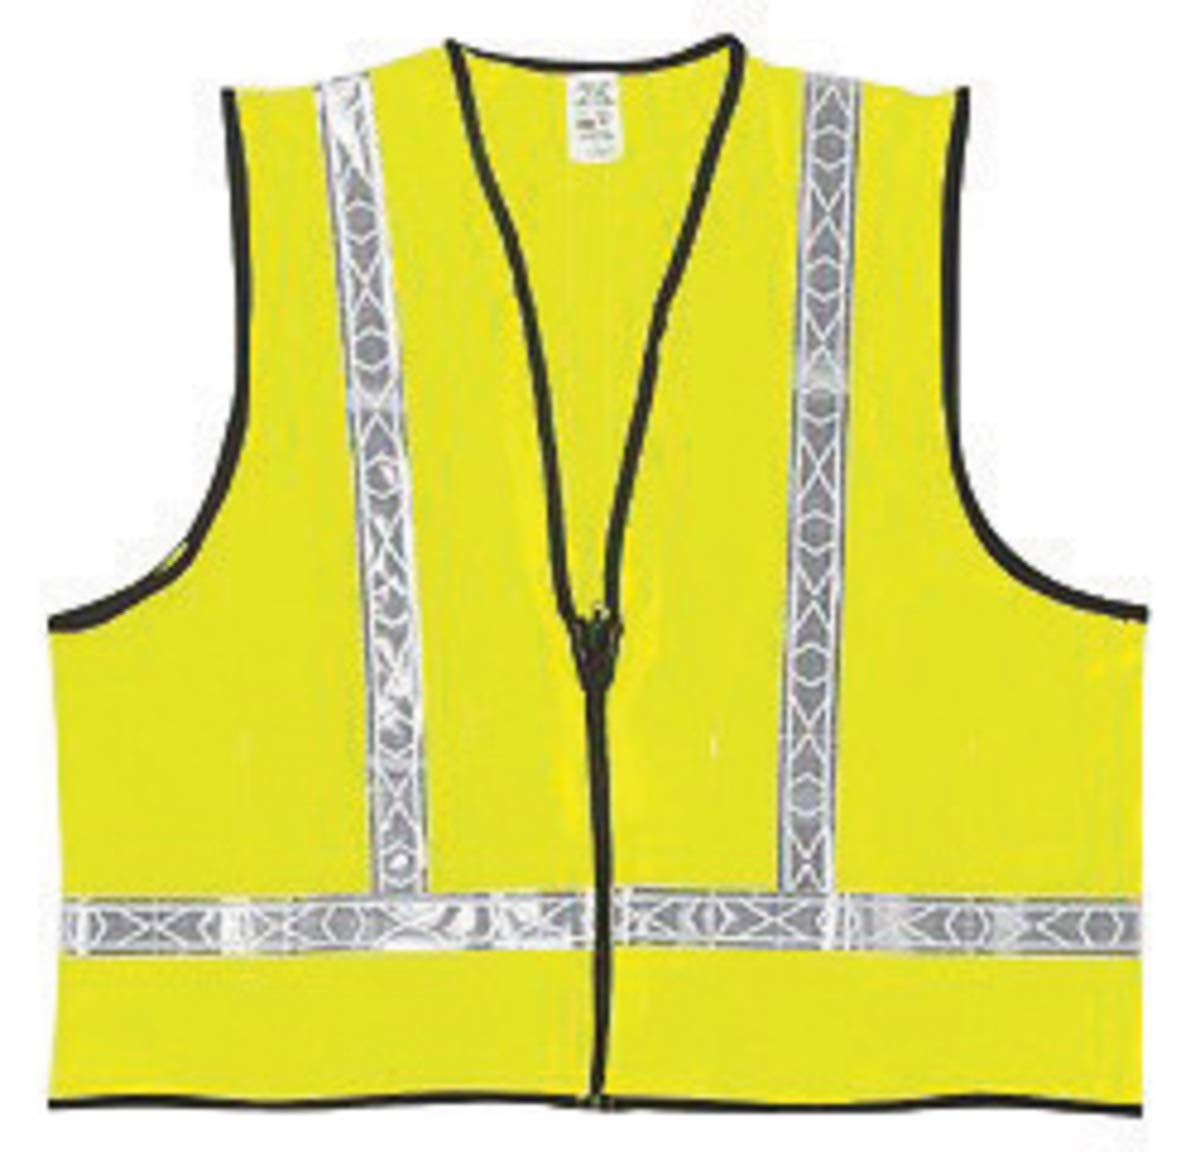 "River City Garments Large Hi-Viz Lime Haynes Polyester Class 2 Vest With Front Zipper Closure And 1 3/8"" White Reflective Tape And 2 Pockets - 50 Each/Case"